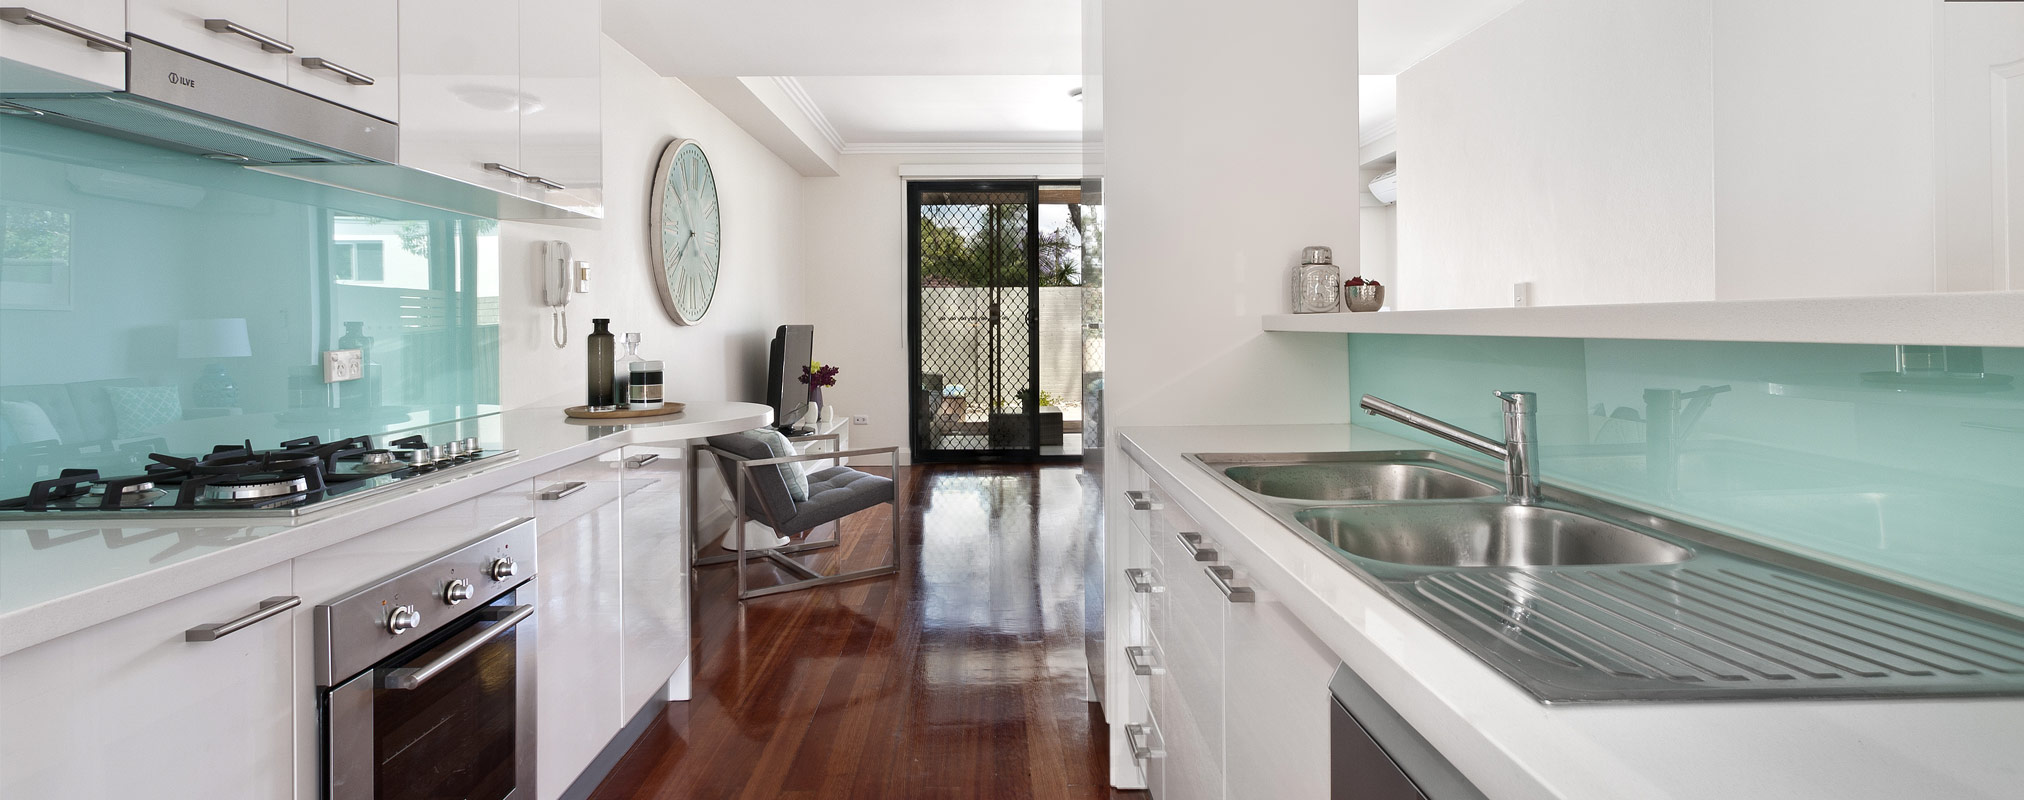 Spotless Residential Cleaning Services in New York and Long Island